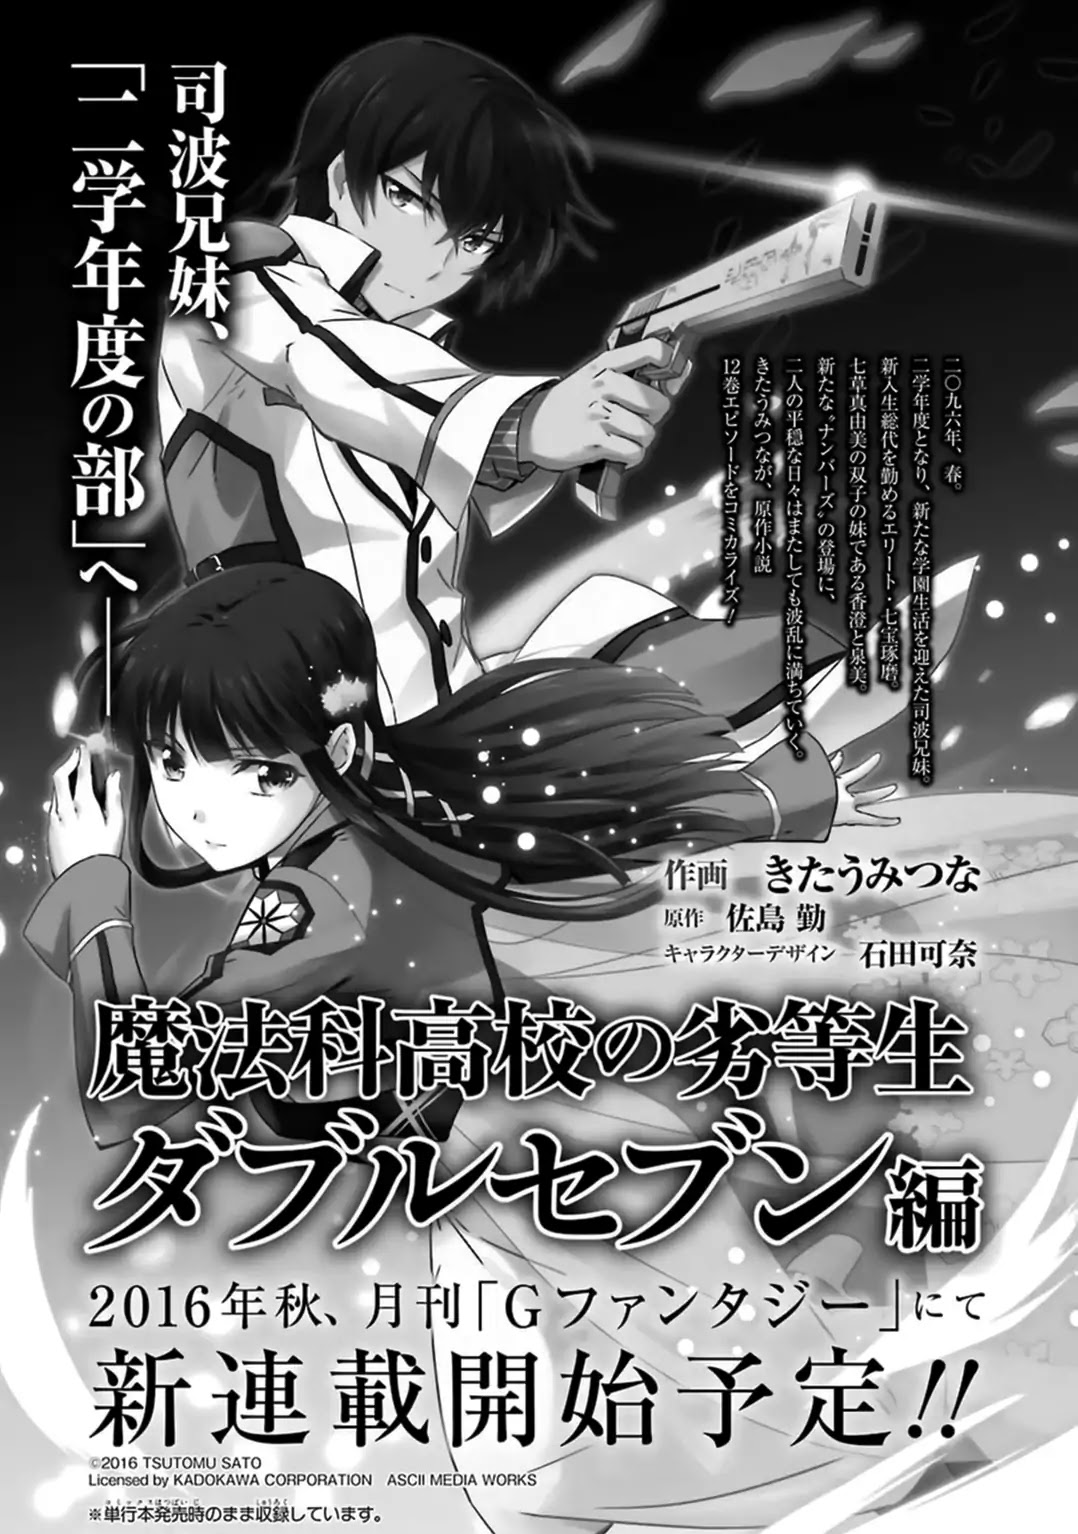 mahouka koukou no rettousei episode wiki,the irregular at magic high school characters,the irregular at magic high school manga,,the irregular at magic high school,mahouka koukou no rettousei miyuki